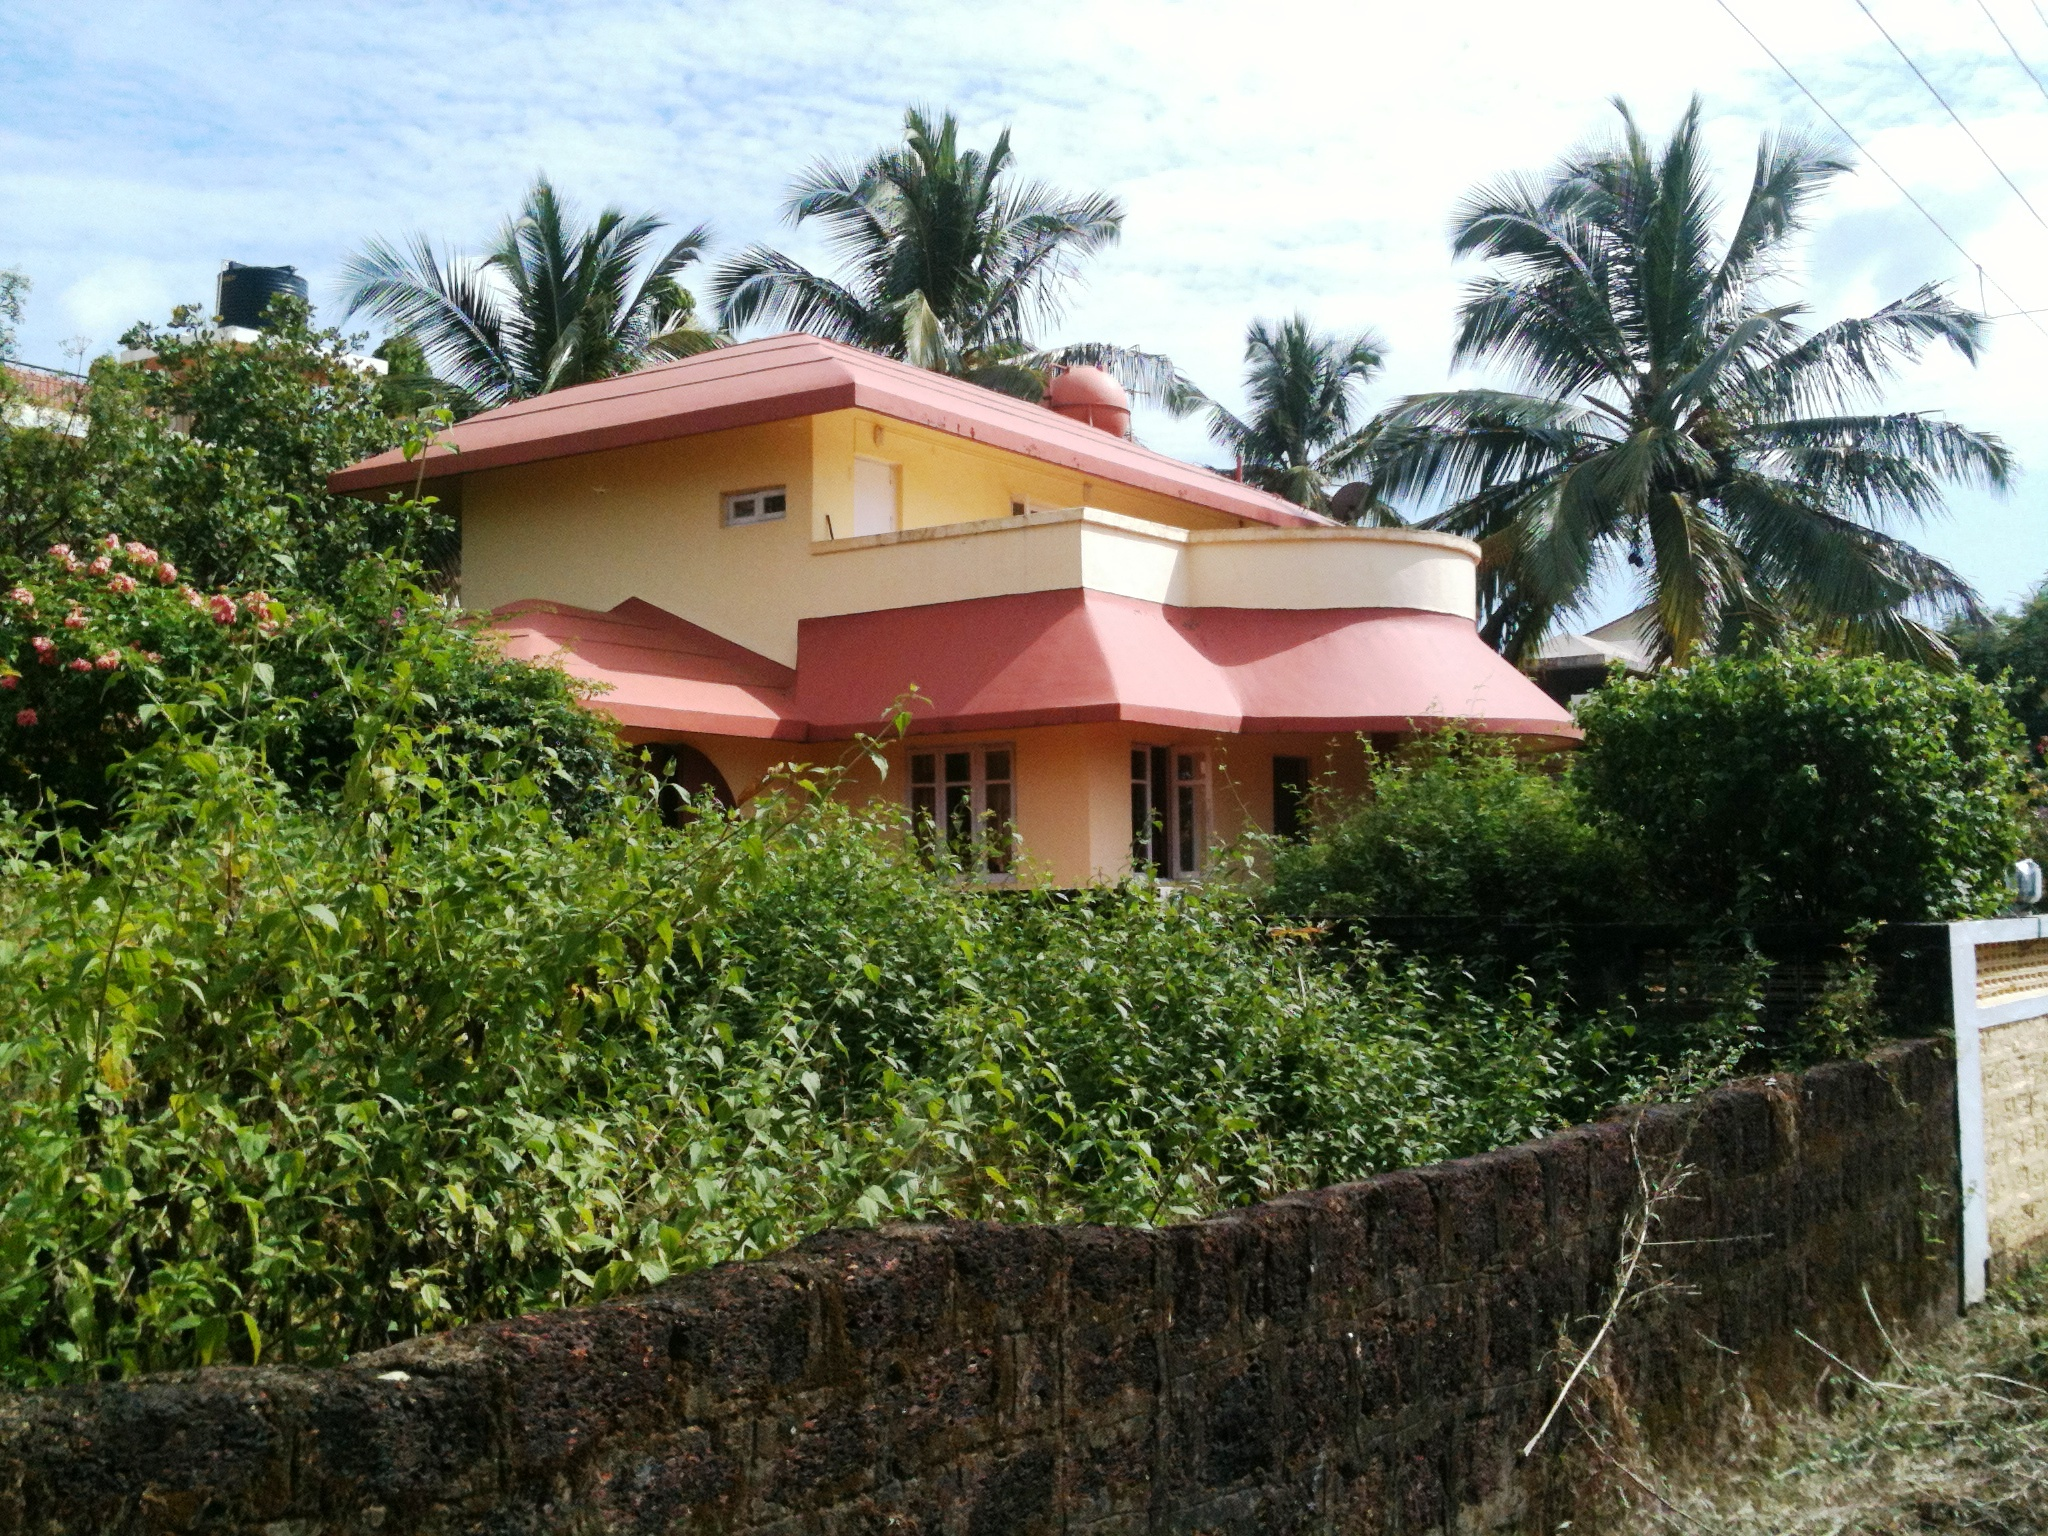 Casa in stil colonial in Goa2